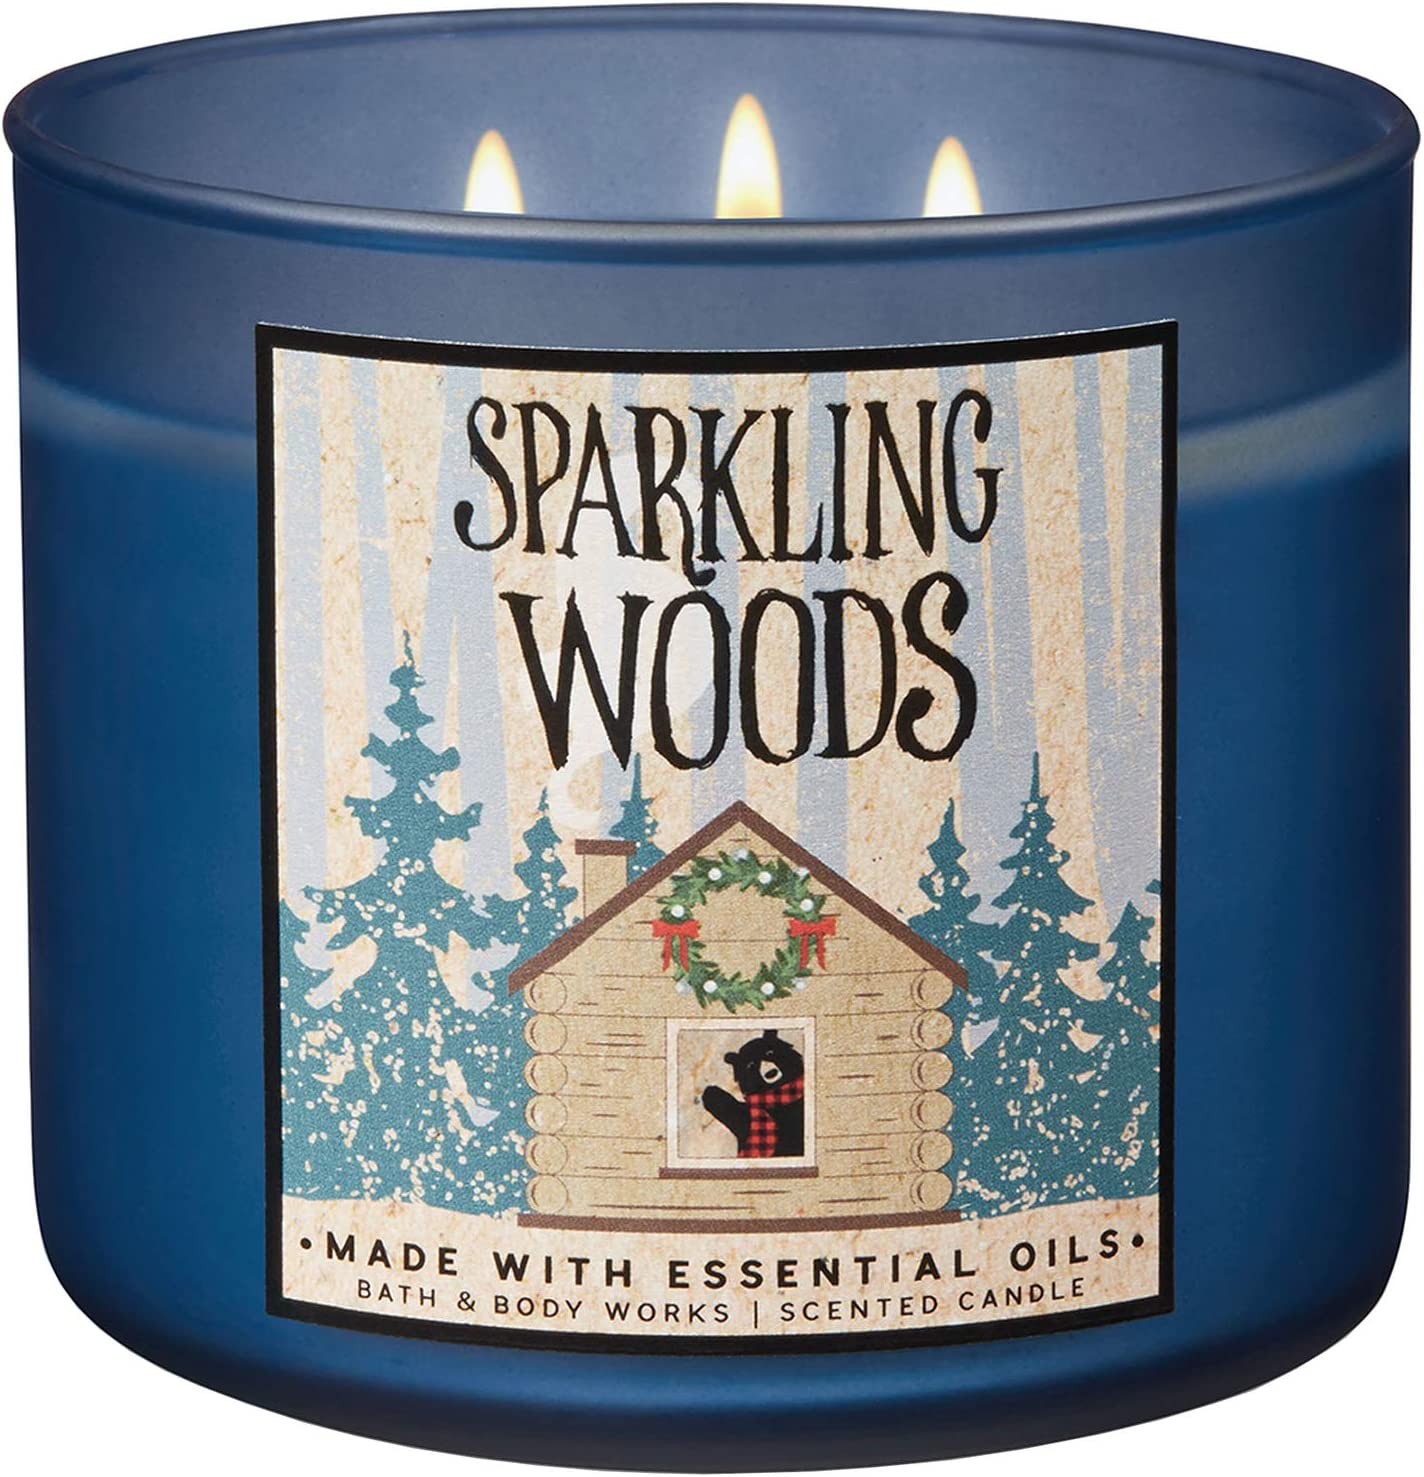 Blue Winter Sky Bath and Body Works 2018 Holiday Limited Edition 3-Wick Candle